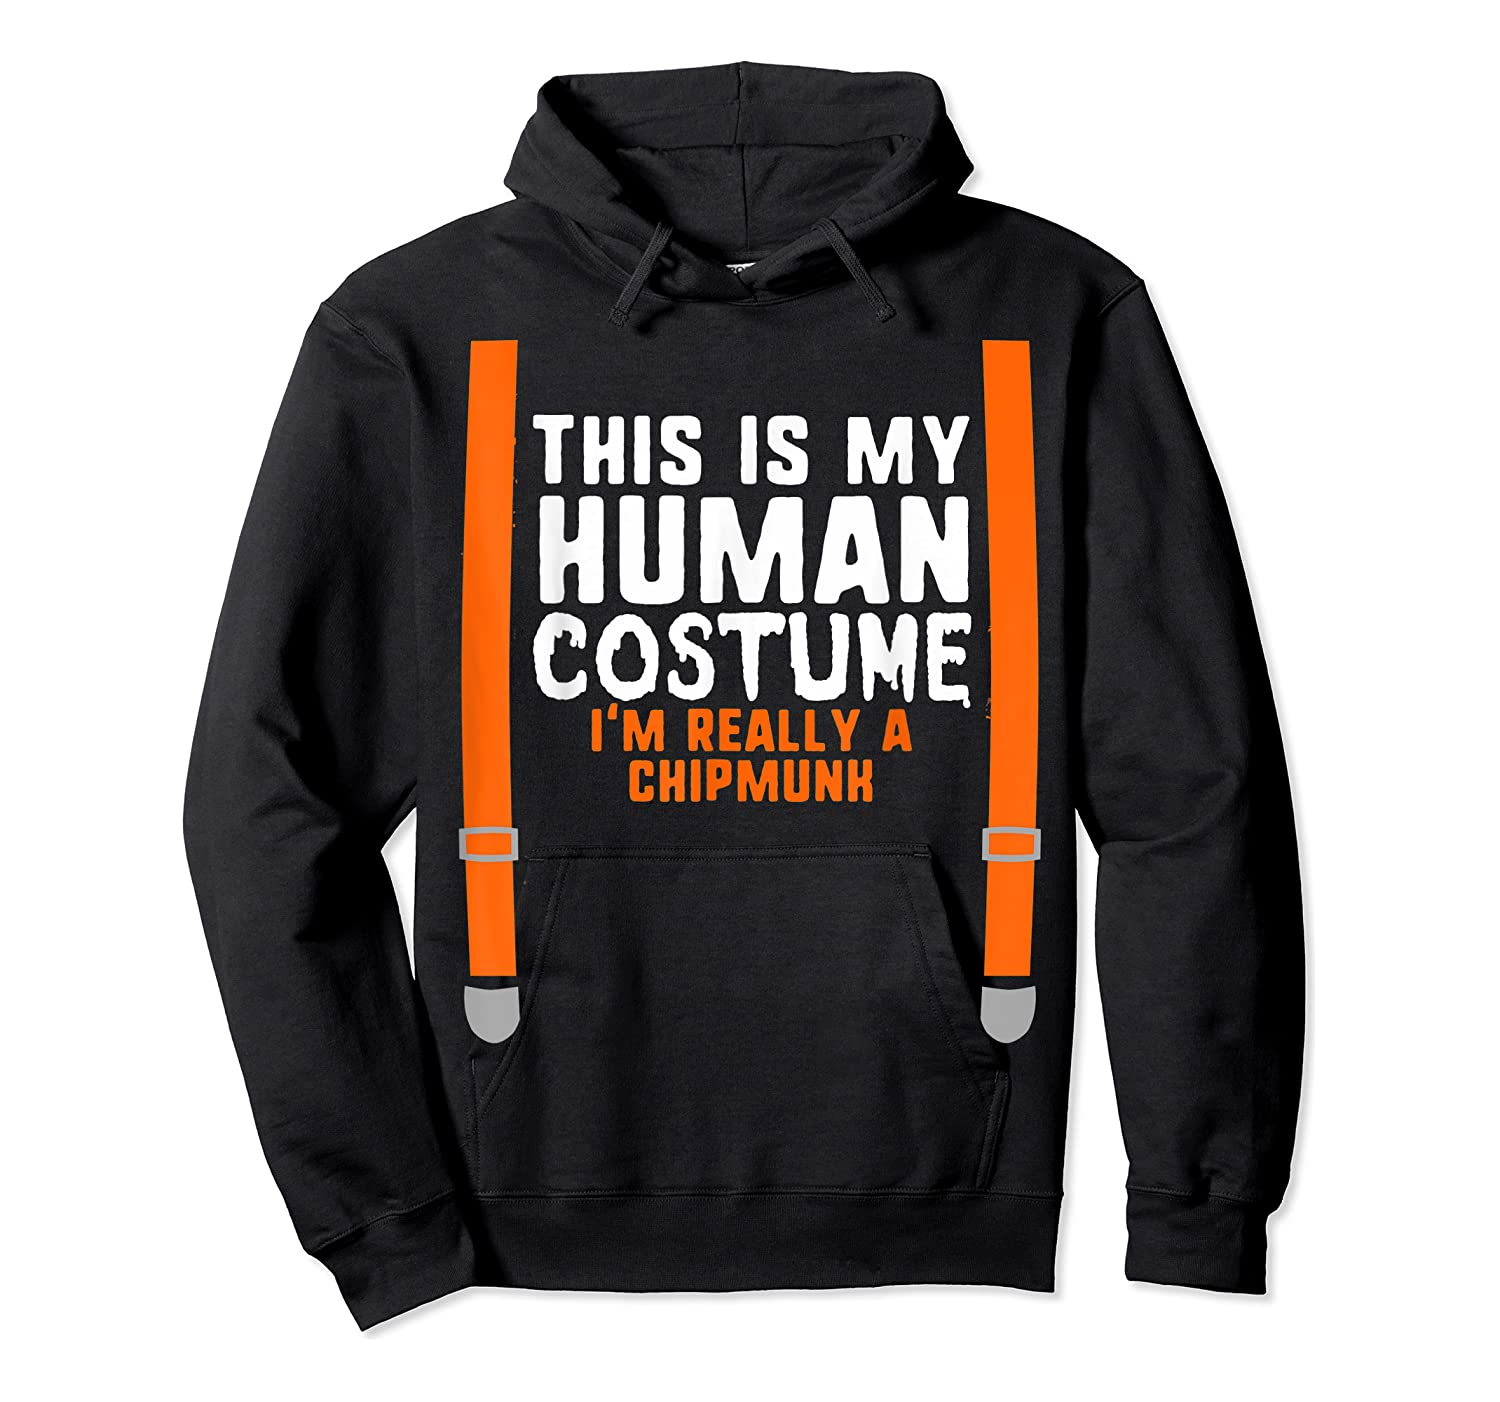 This Is My Human Costume I'm Really A Chipmunk Halloween Shirts Unisex Pullover Hoodie